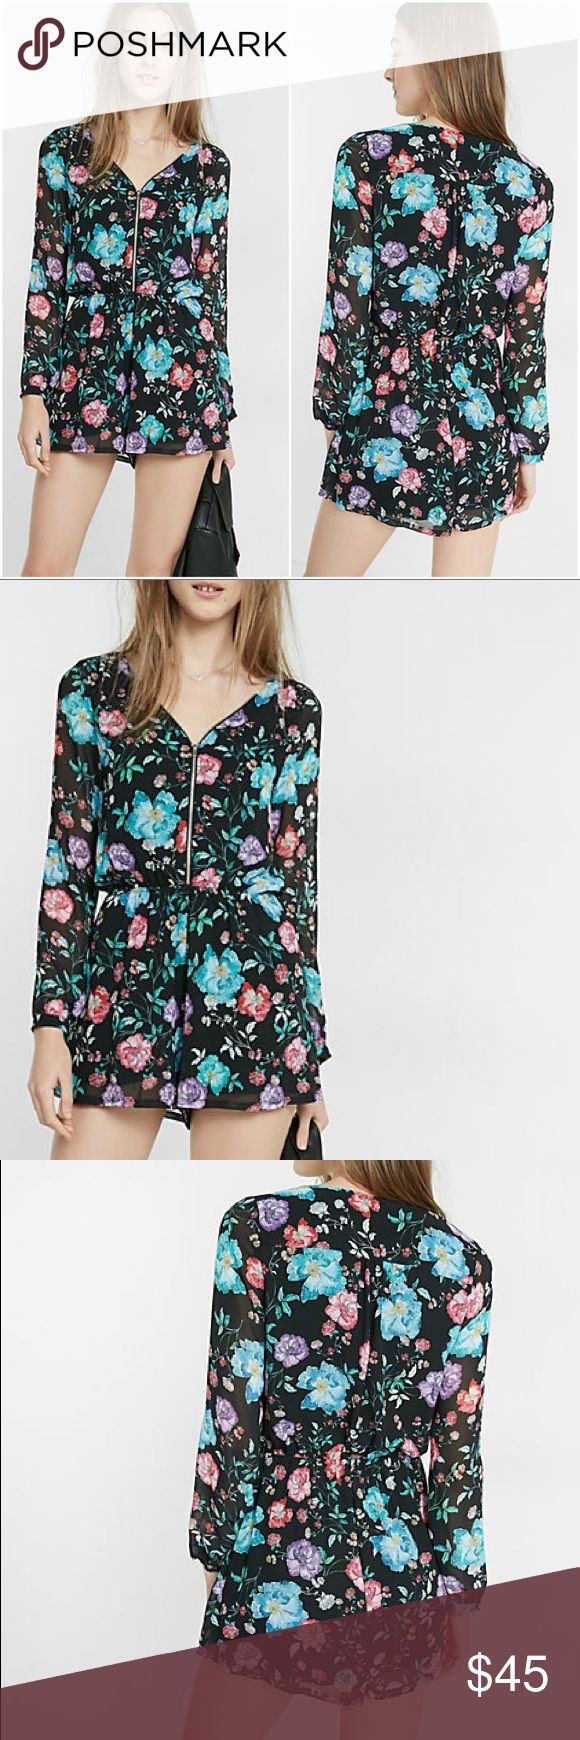 """NWT! - Floral Zip Up Romper New with tags! Never worn, sexy zip front allows you to customize how much skin you want to show. Smooth, silky fabric drapes over your curves comfortably, while a gathered waistband cinches your silhouette to give you that hourglass shape. Pair this with your favorite sunnies and wedges for a fun and girlie ensemble. 1.5"""" inseam, v-neck. Has a zip front, romper is fully lined with long sleeves. Polyester material, machine wash. In perfect condition, has no…"""